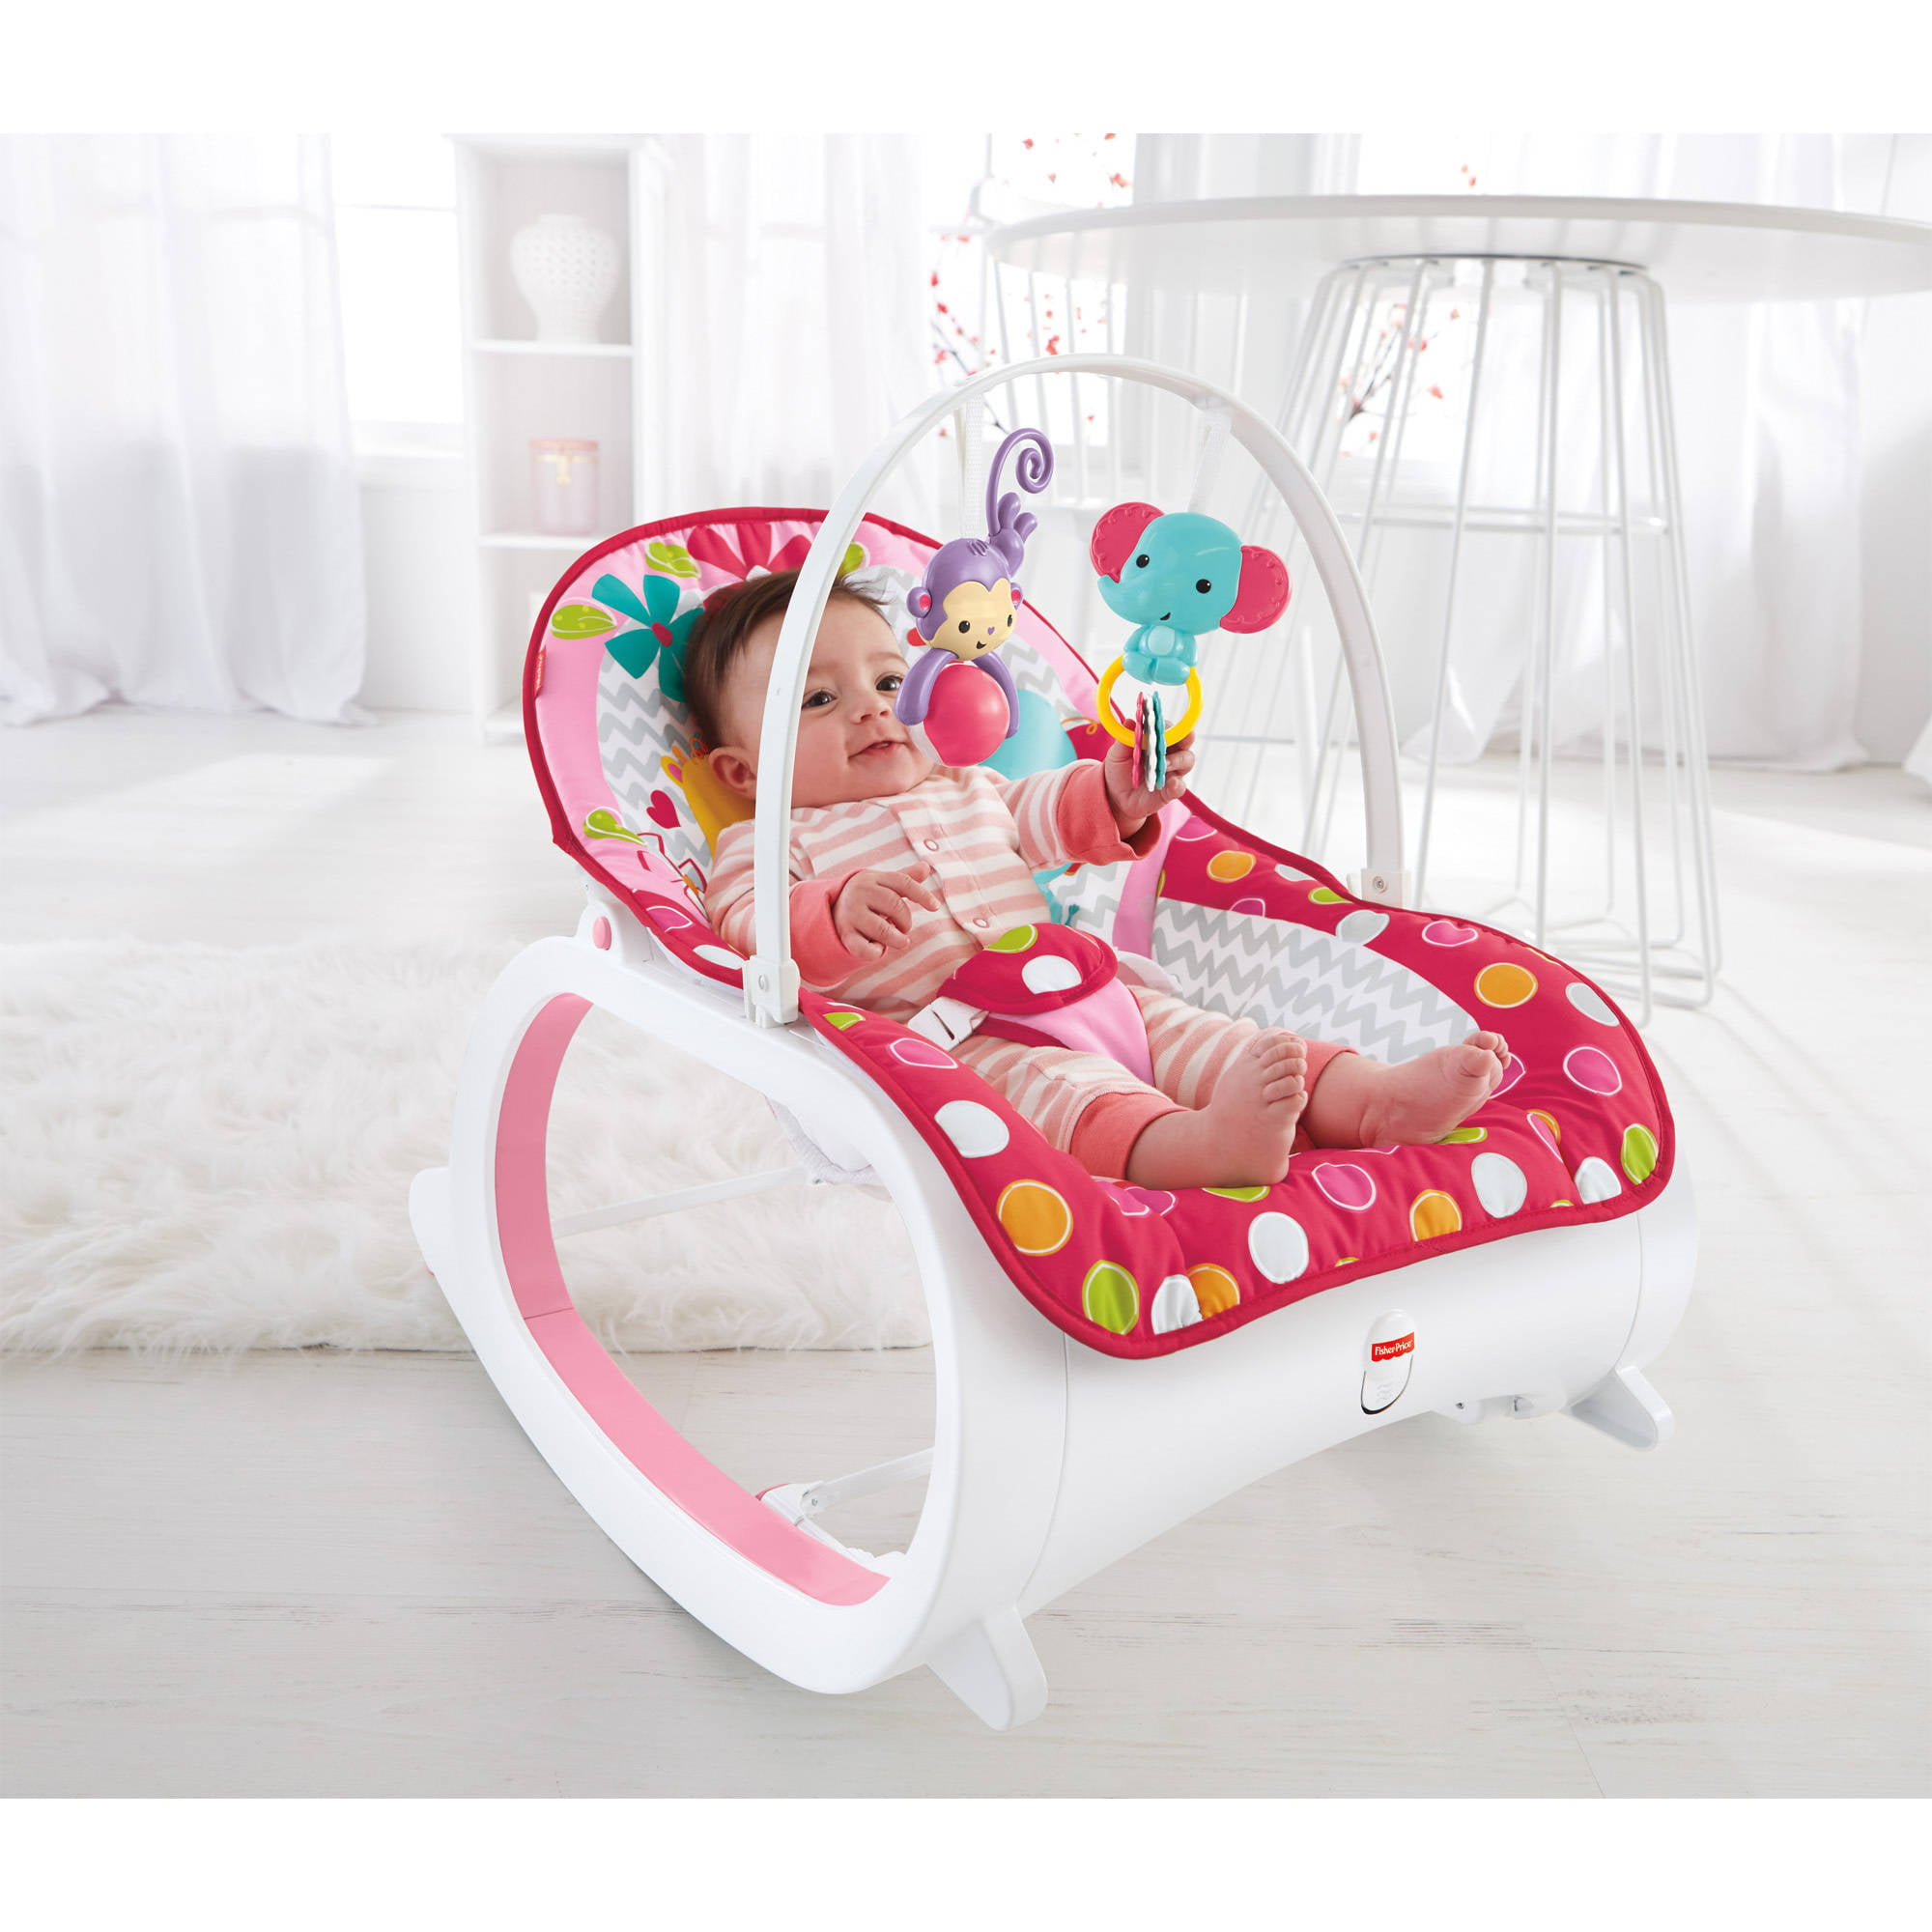 Merveilleux Fisher Price Infant To Toddler Rocker   Walmart.com